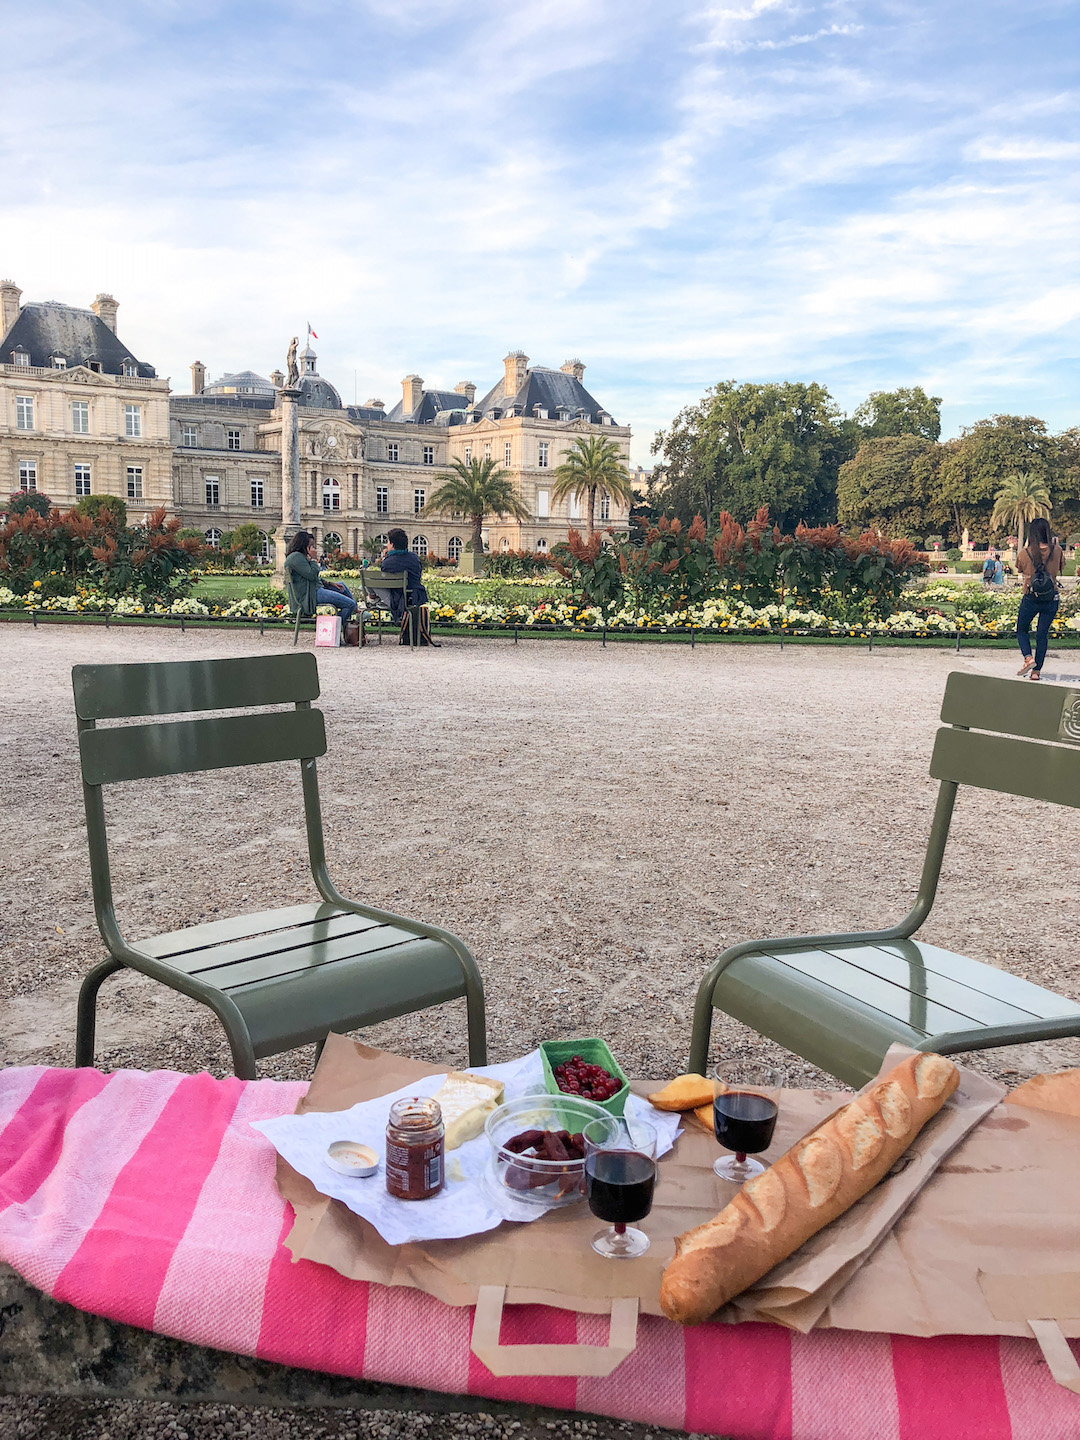 Picnic in the Jardin du Luxembourg